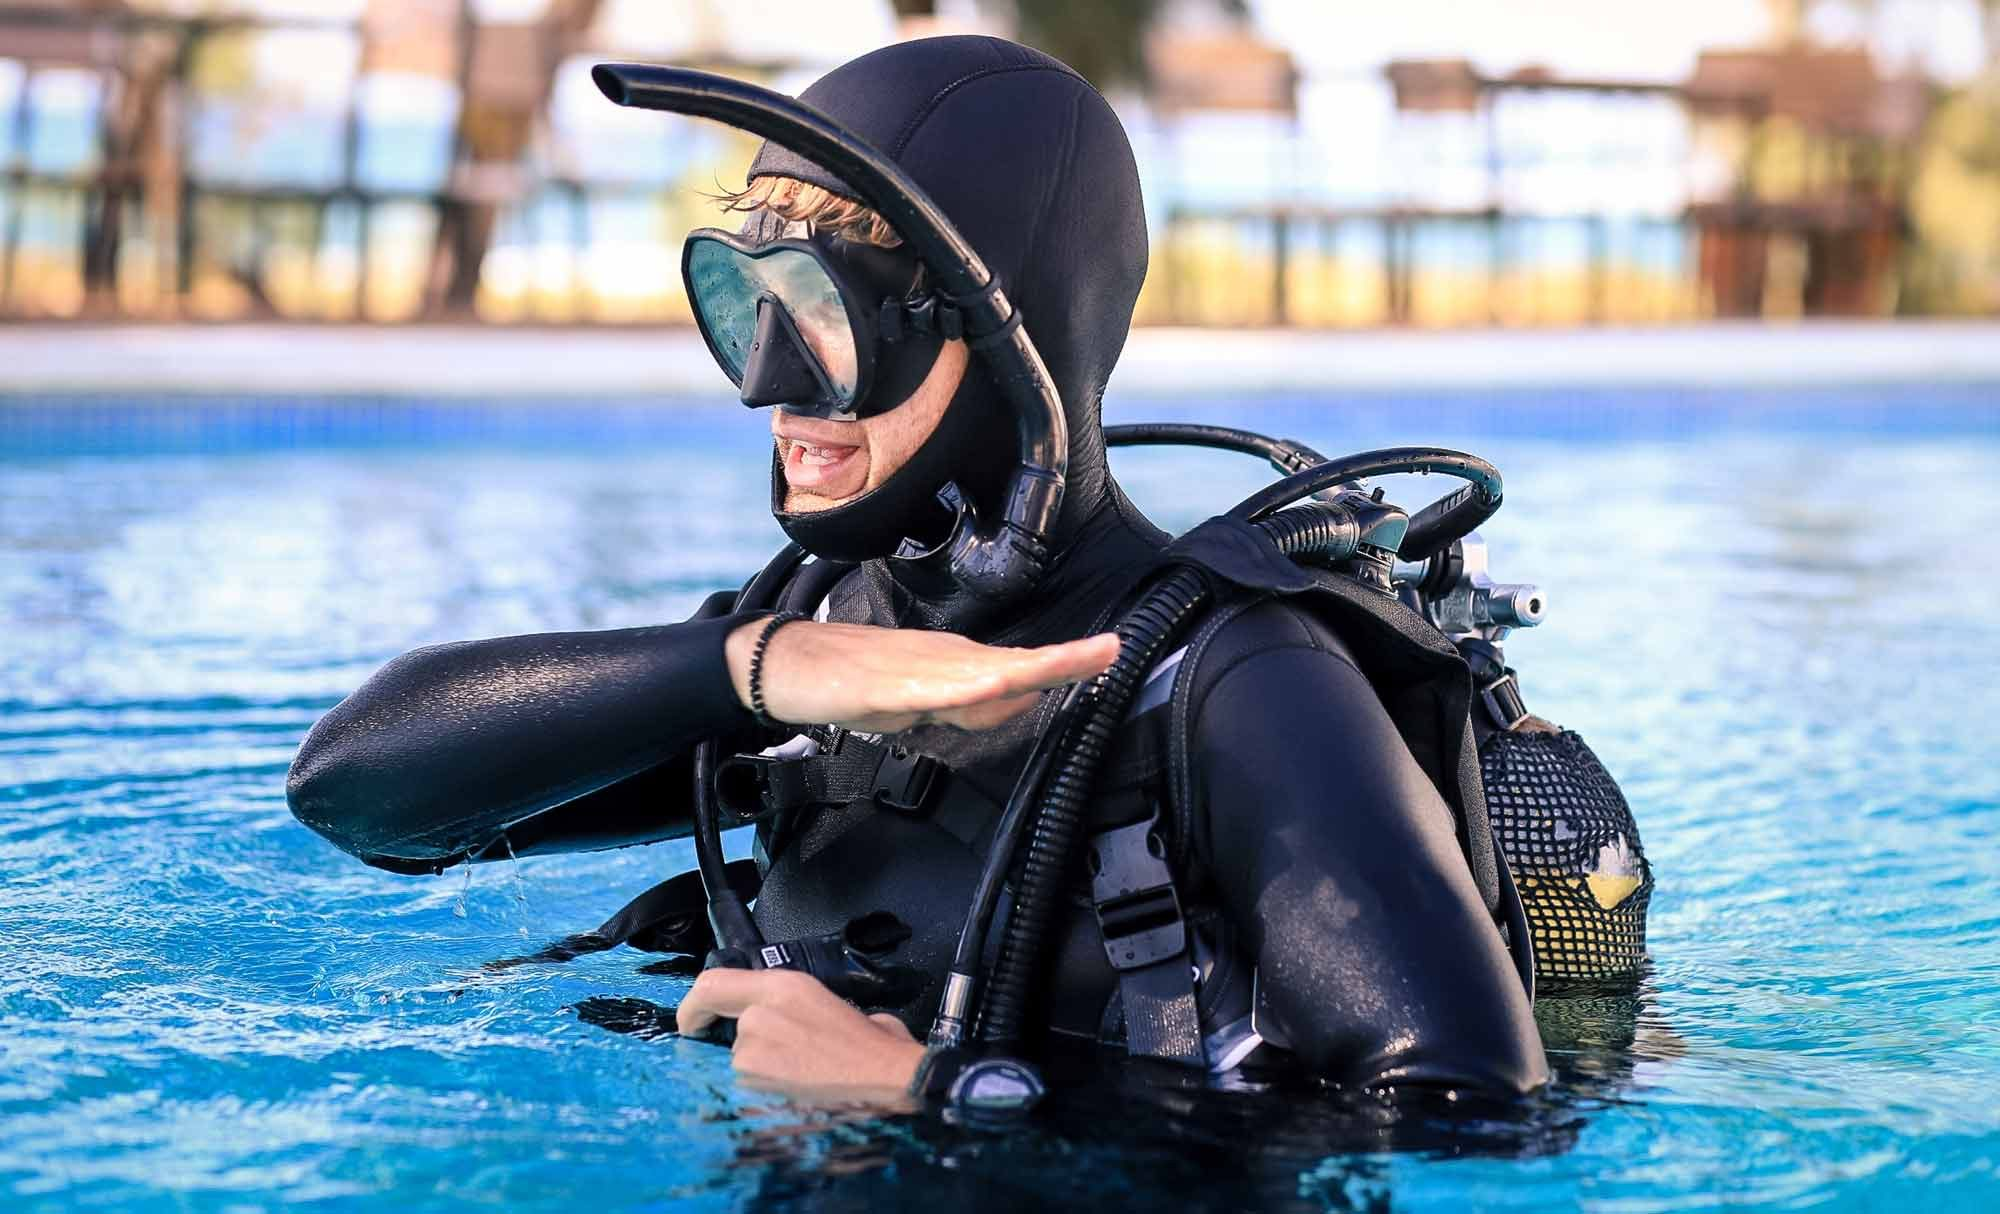 Scuba Divers Safety Tips